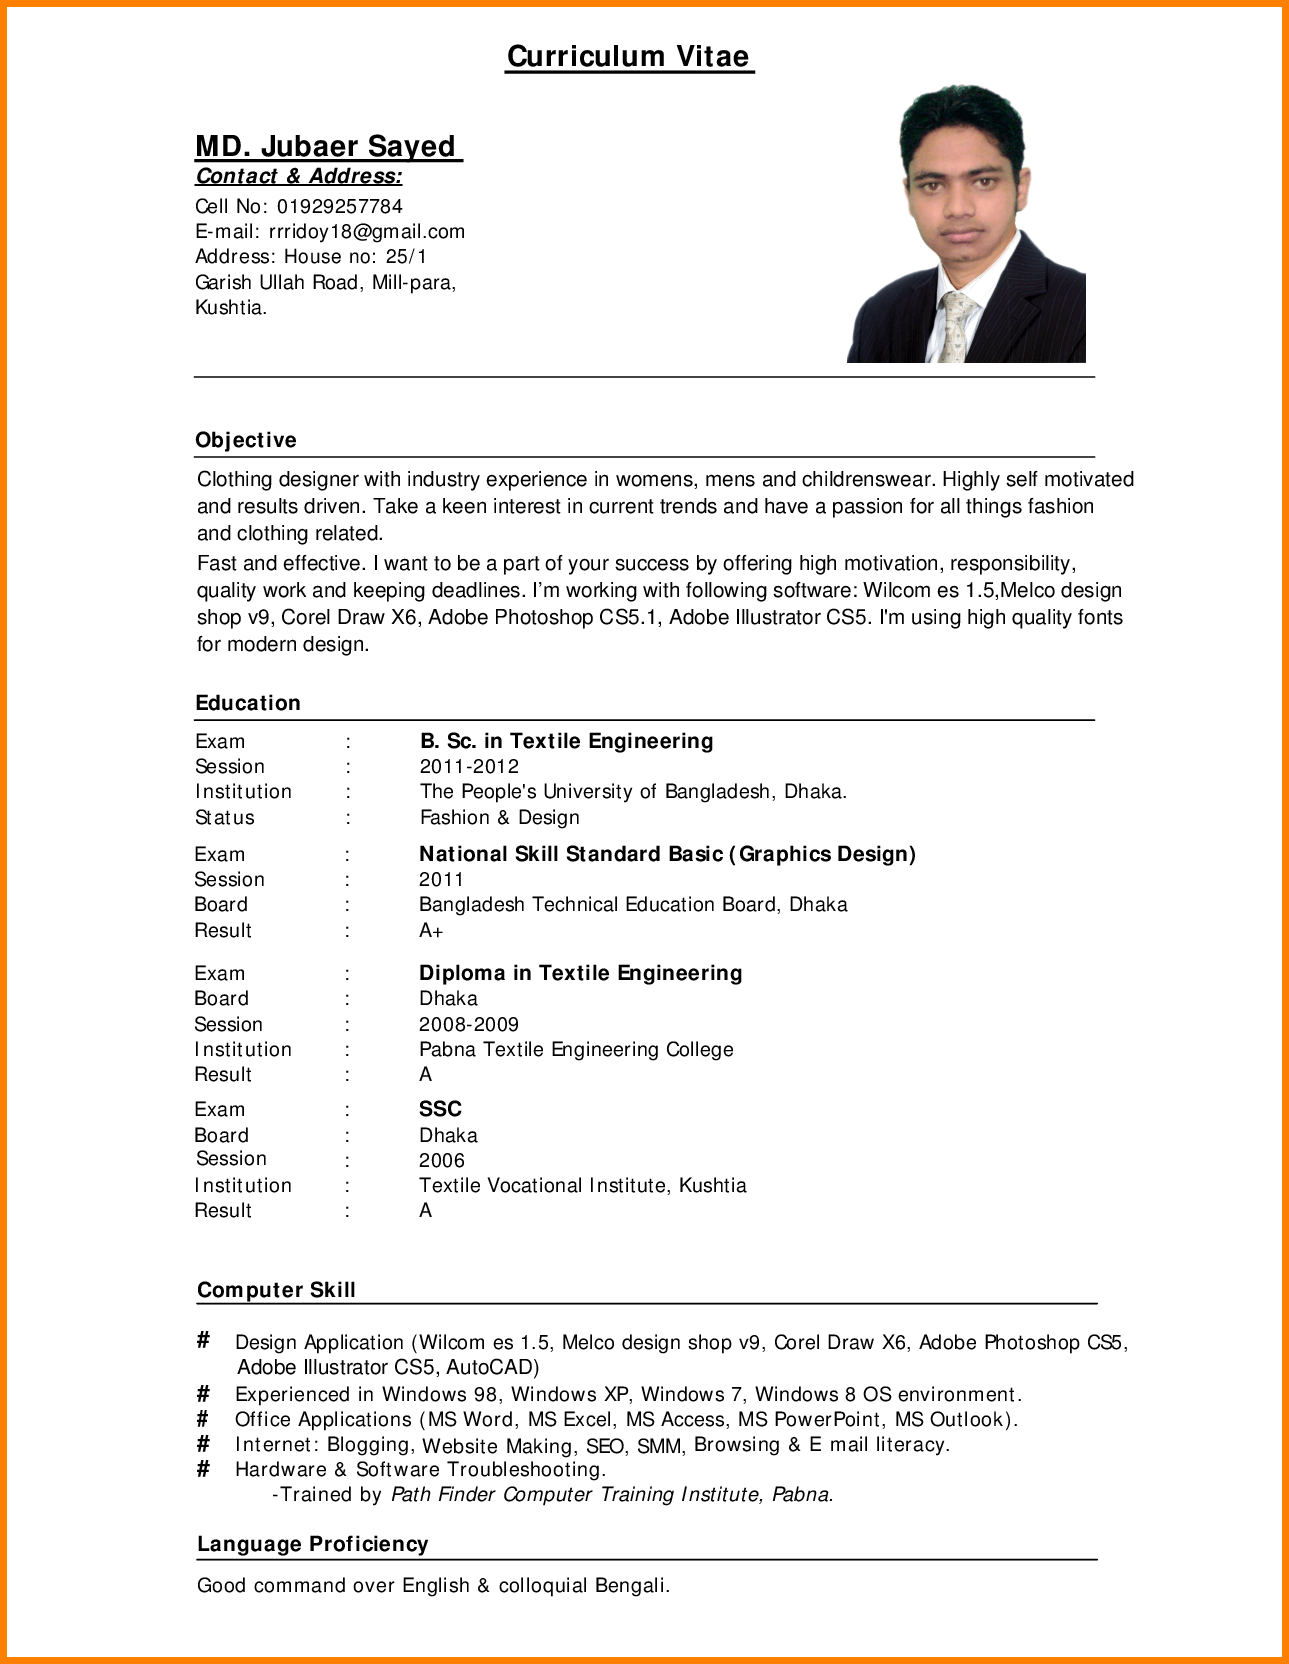 Automation Sales Engineer Sample Resume Sample Pdfputer Skills And Education For Curriculum Vitae Resume .